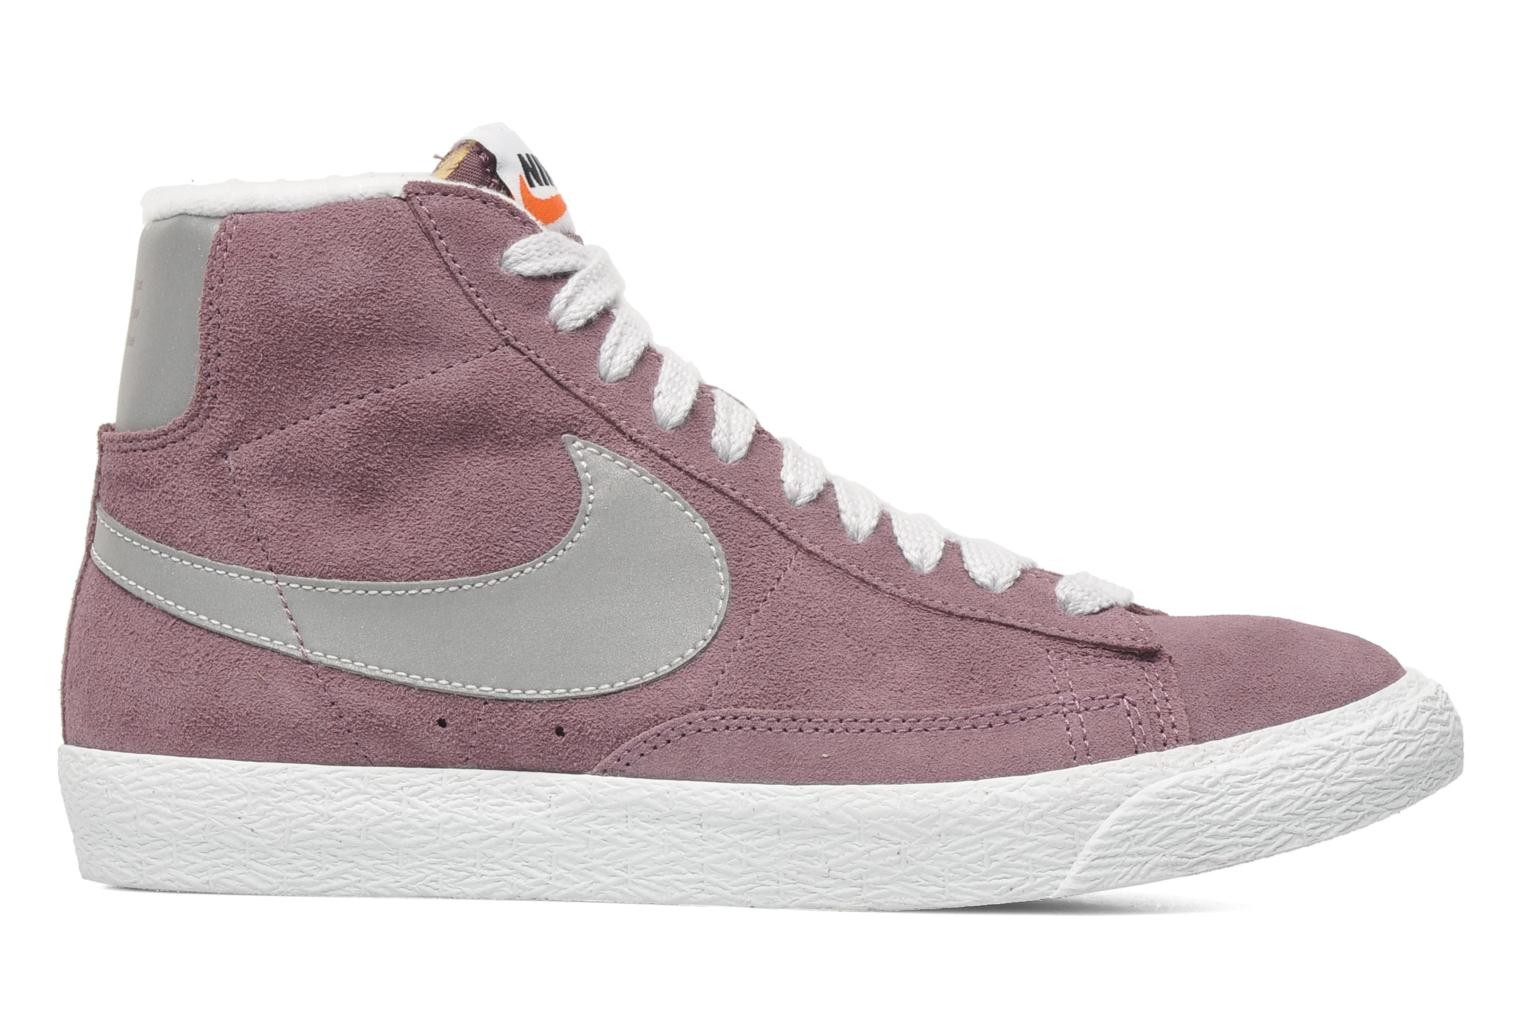 Nike WMNS Blazer Mid Prm Vintage Suede Purple Shade Reflect Silver Pure Platinium Womens Trainers